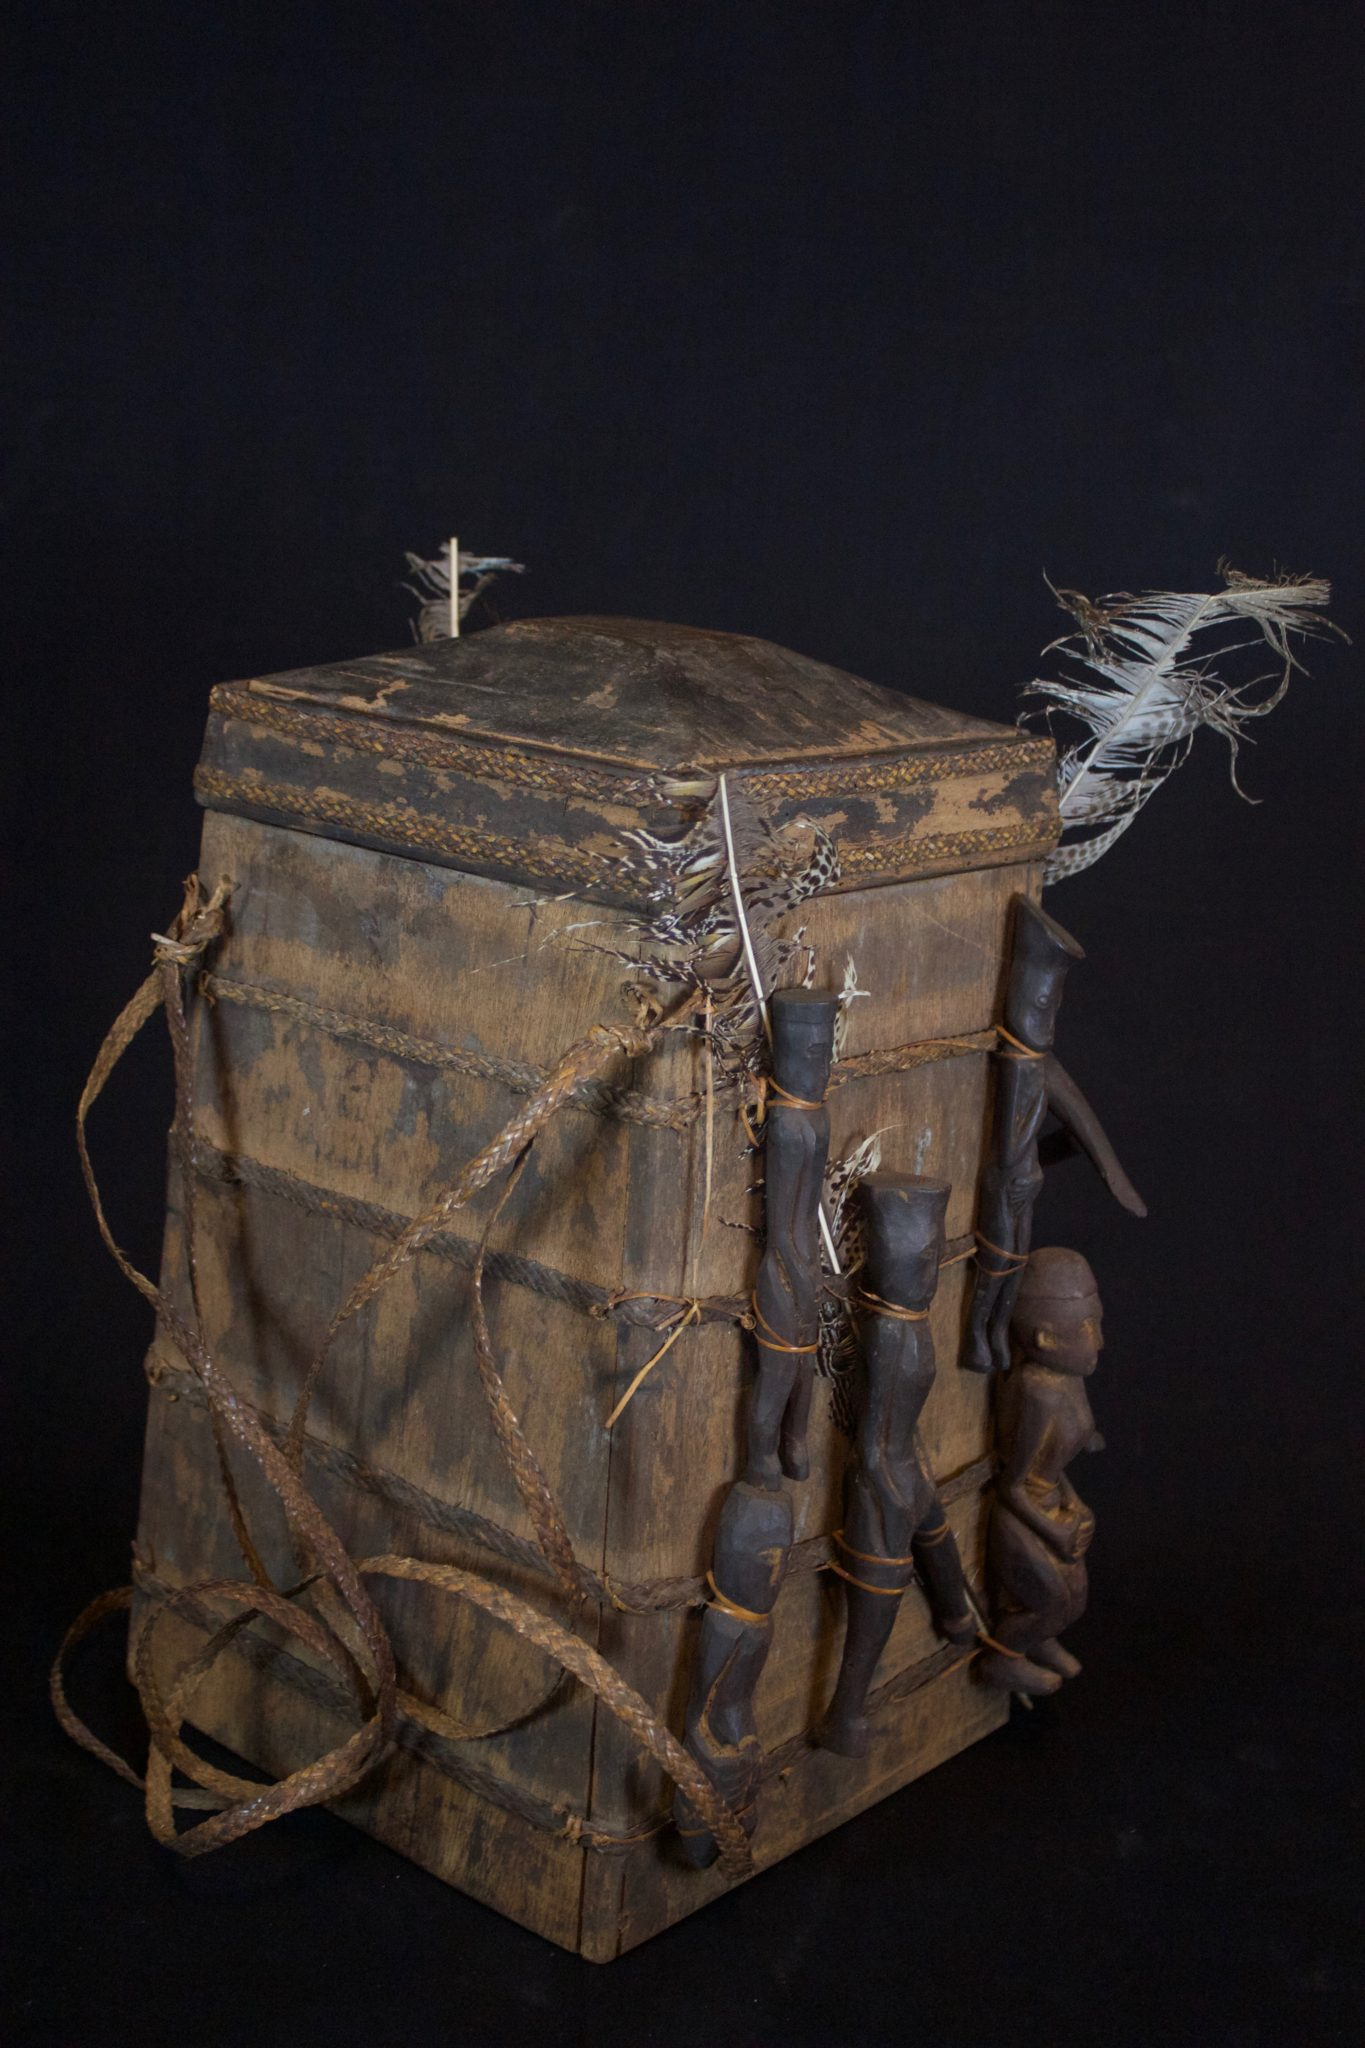 """'Lupong Manang' or Shaman's Medicine Carrier/Backpack with Healing Amulet/Fetish Figures (rare), East Kalimantan, Borneo, Indonesia, Dayak tribe, Late 19th to early 20th c, Wood pigmented with soot, raffia, feathers, porcupine quill. Shaman made their own medicine kit backpacks to carry items for healing, protection and predictions such as special teeth, stones and other items. The healing amulet figures on the exterior correspond to illnesses and other conditions. 17"""" x 12 ½"""" x 15"""", $3,900. (see previous image of front side)"""